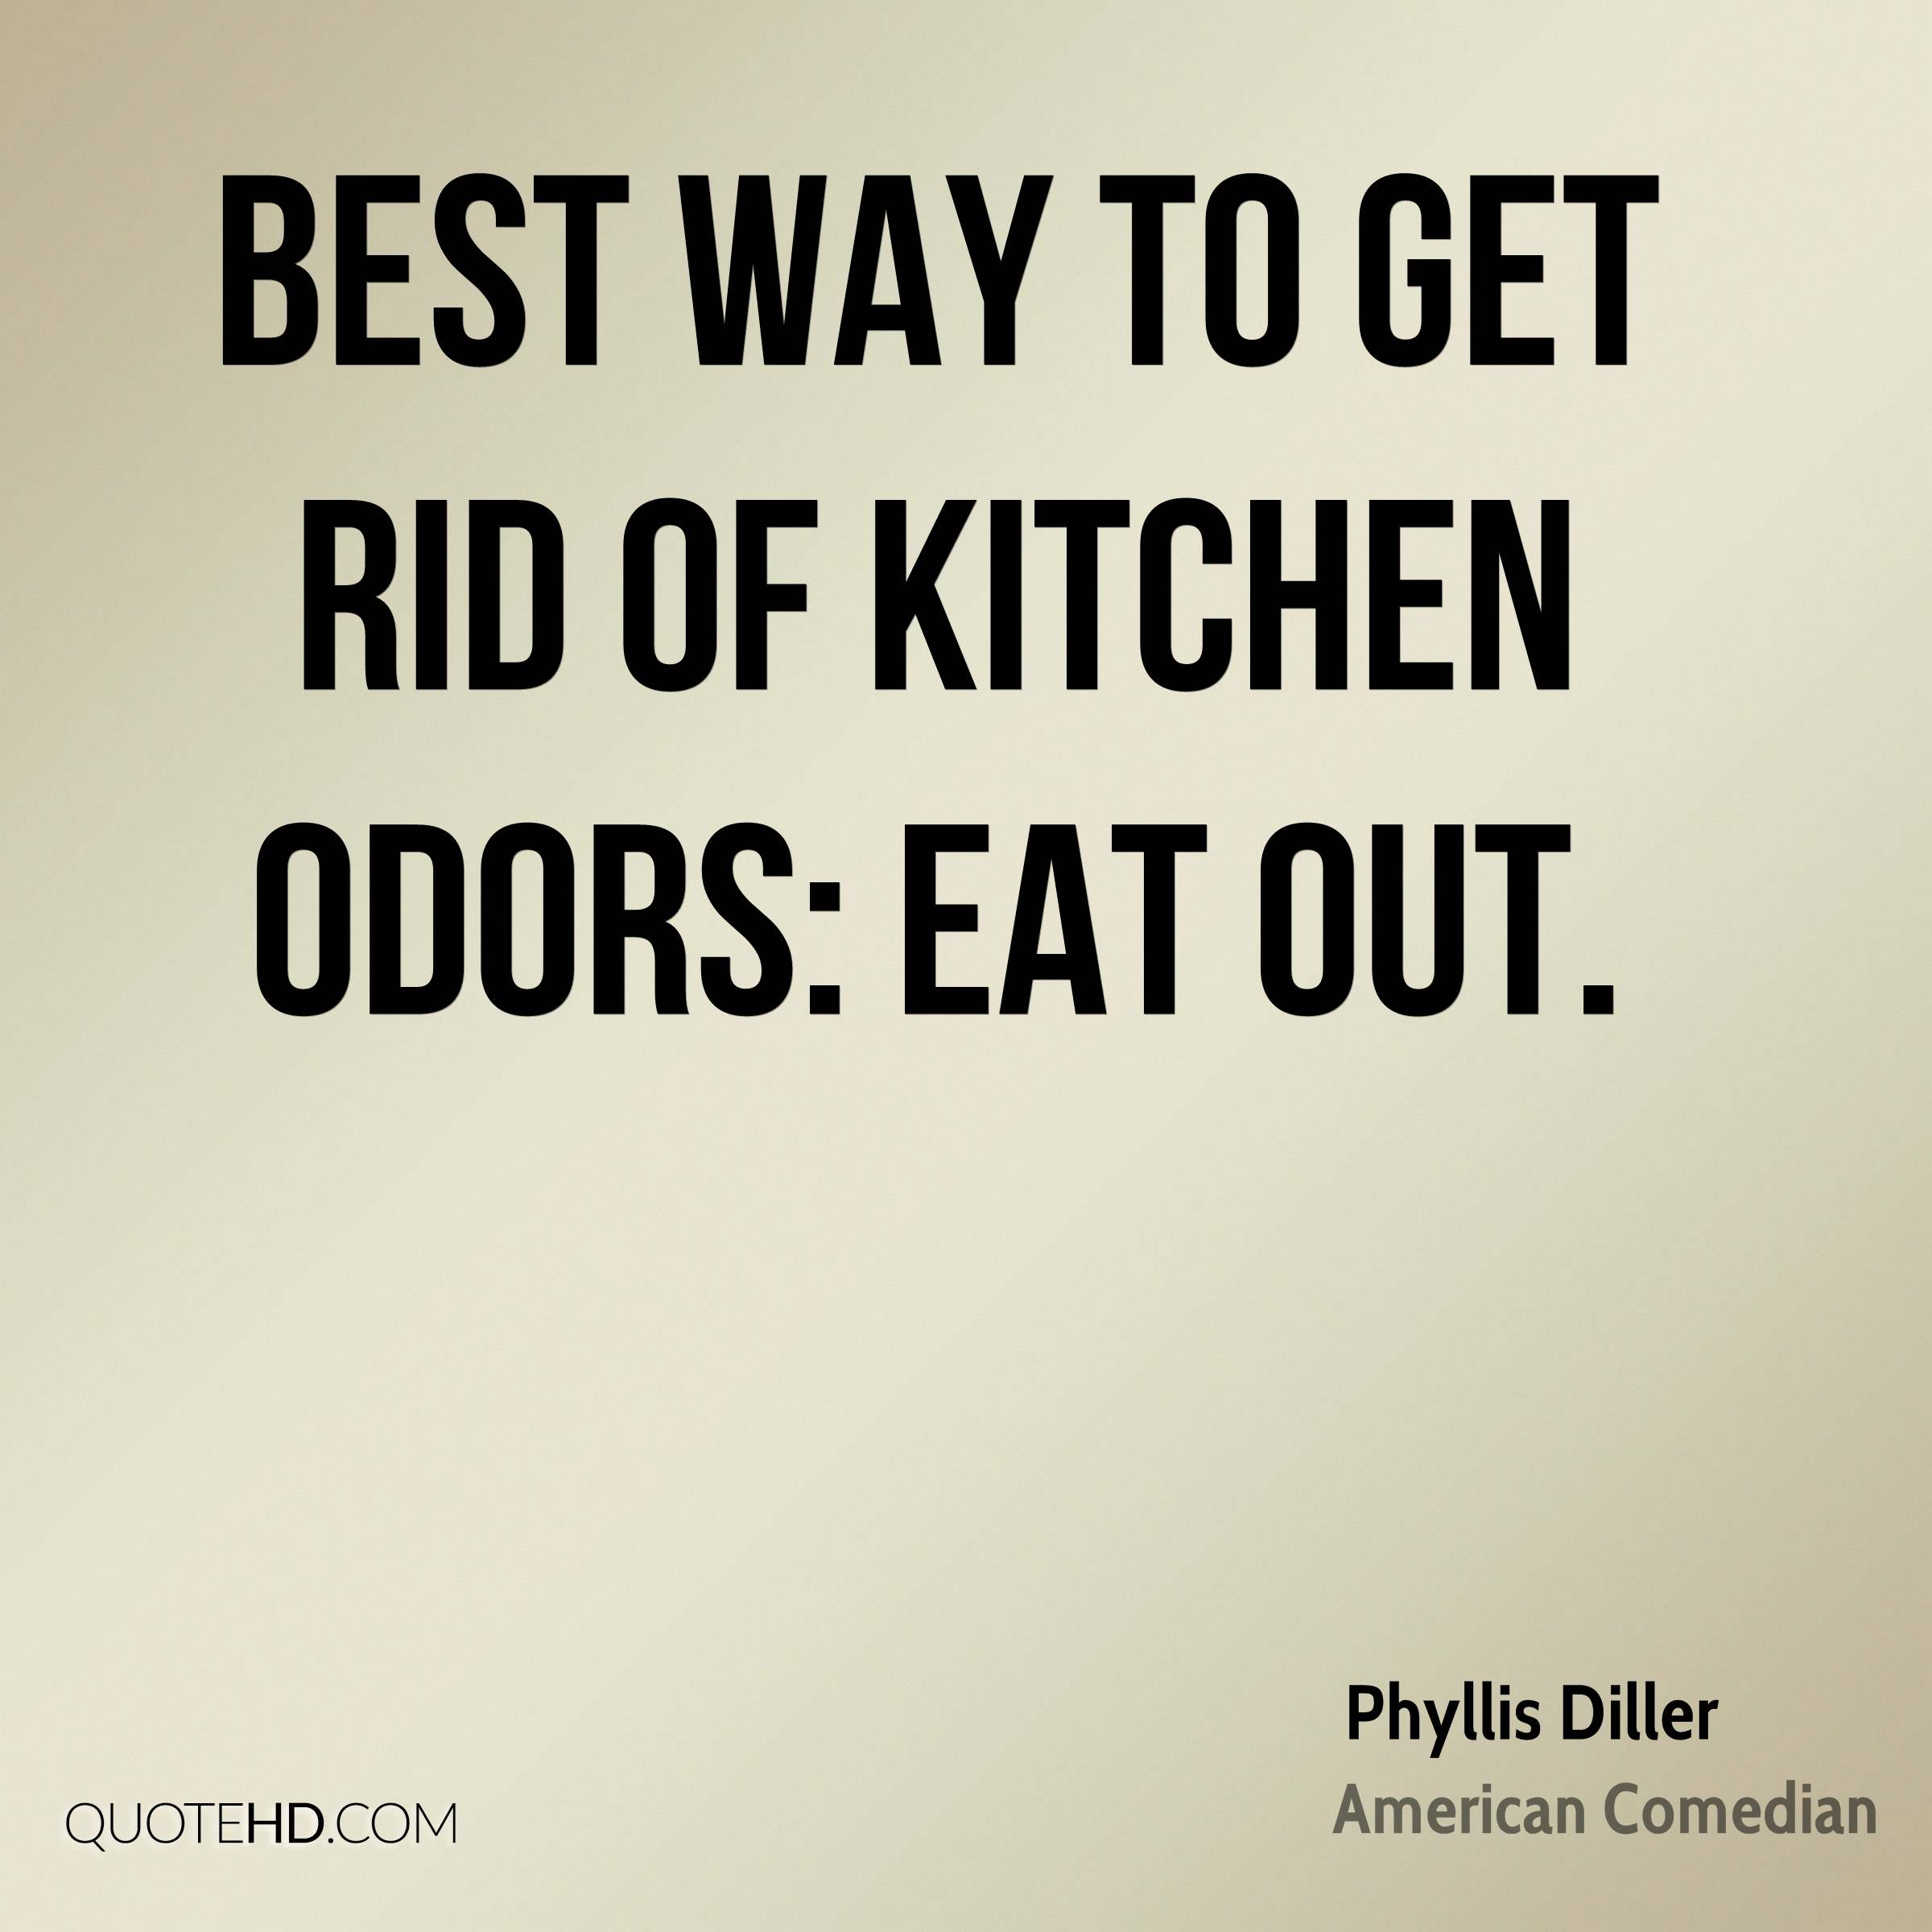 Best way to get rid of kitchen odors: Eat out.